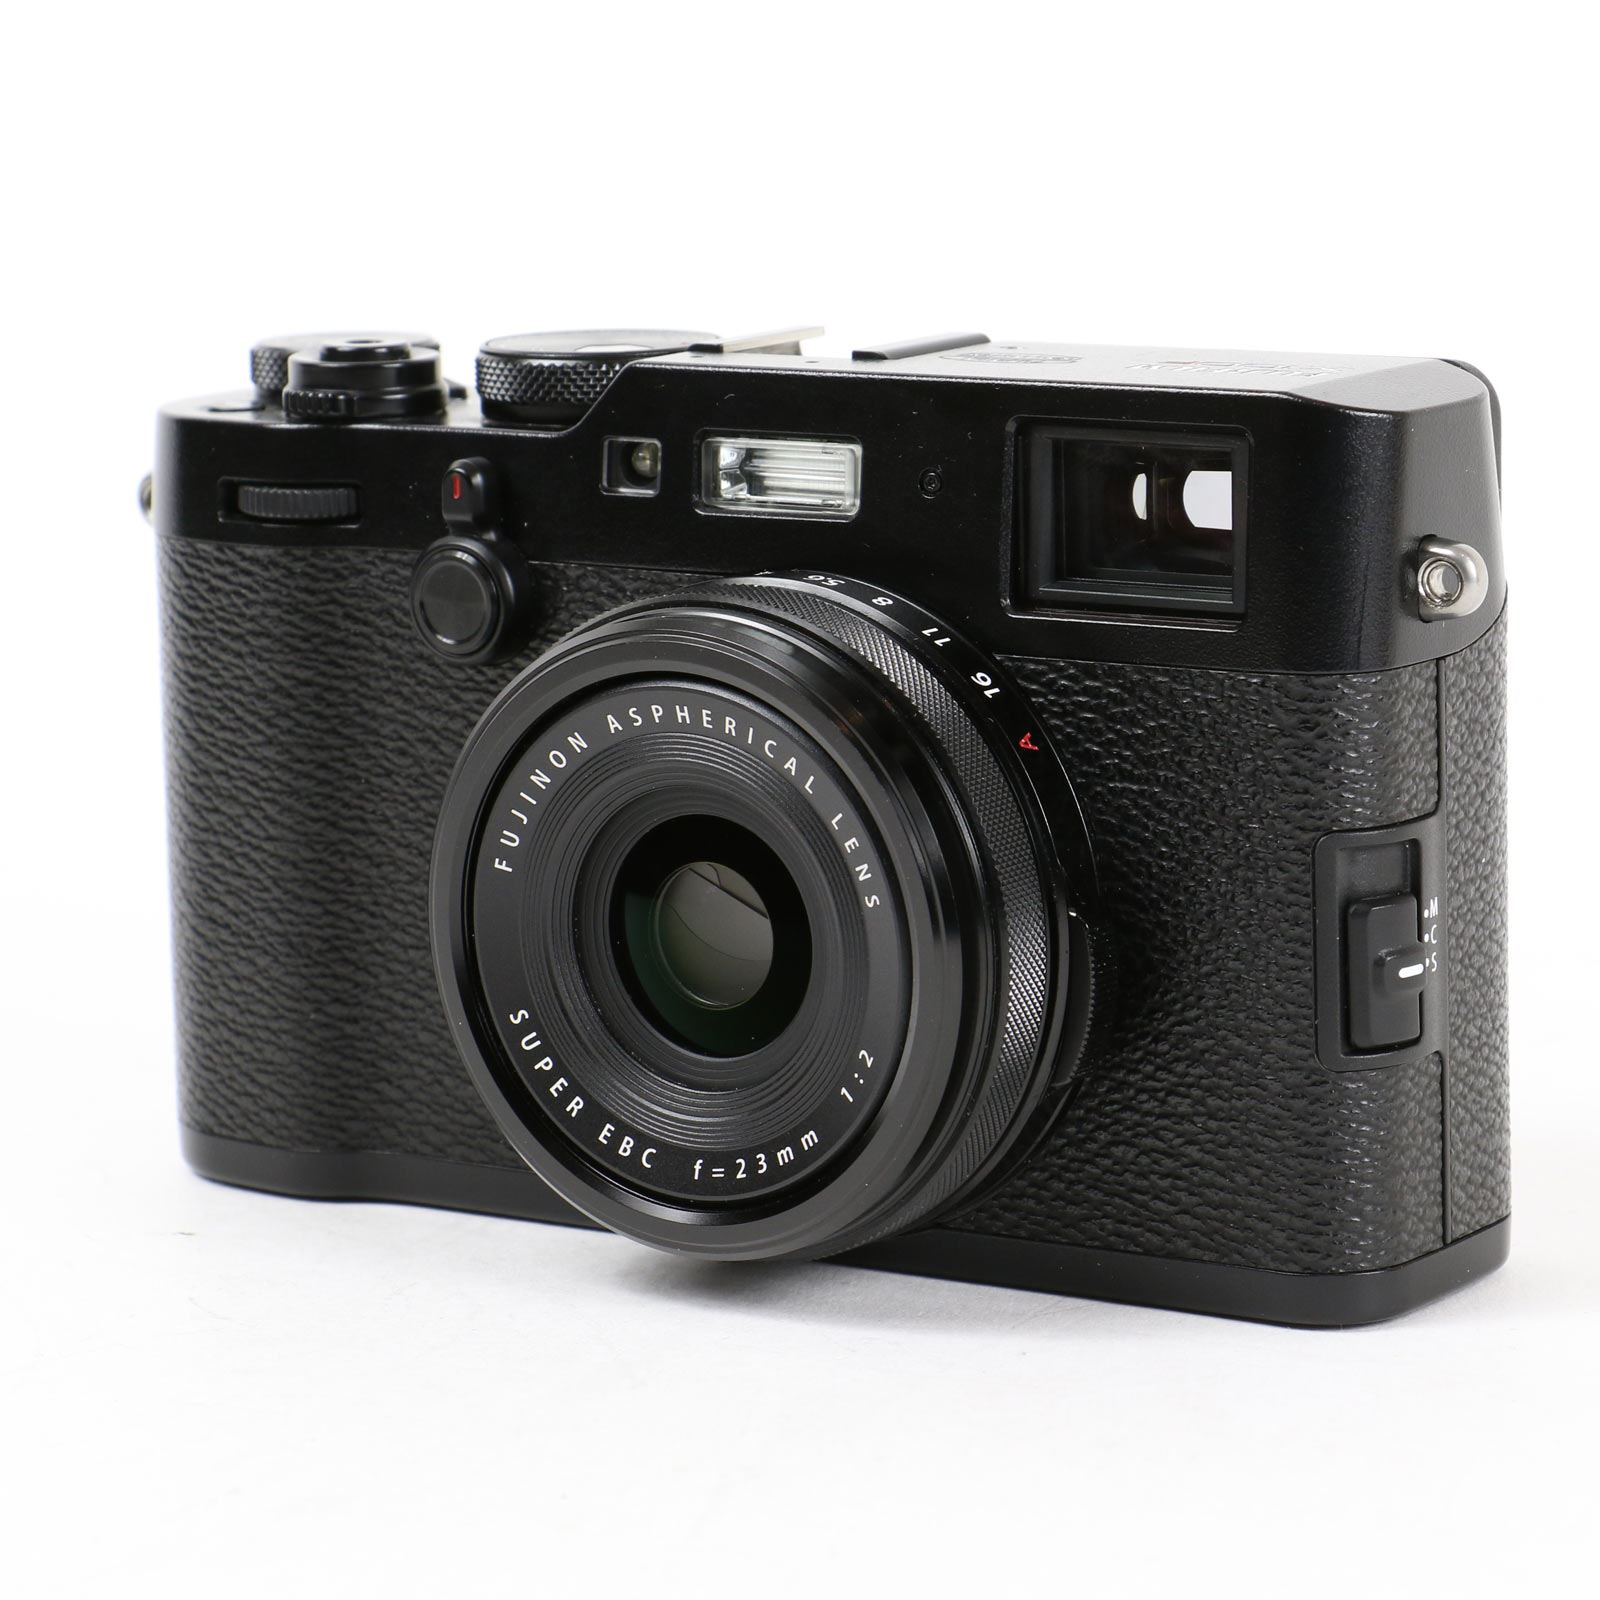 Image of Used Fujifilm X100F Digital Camera - Black